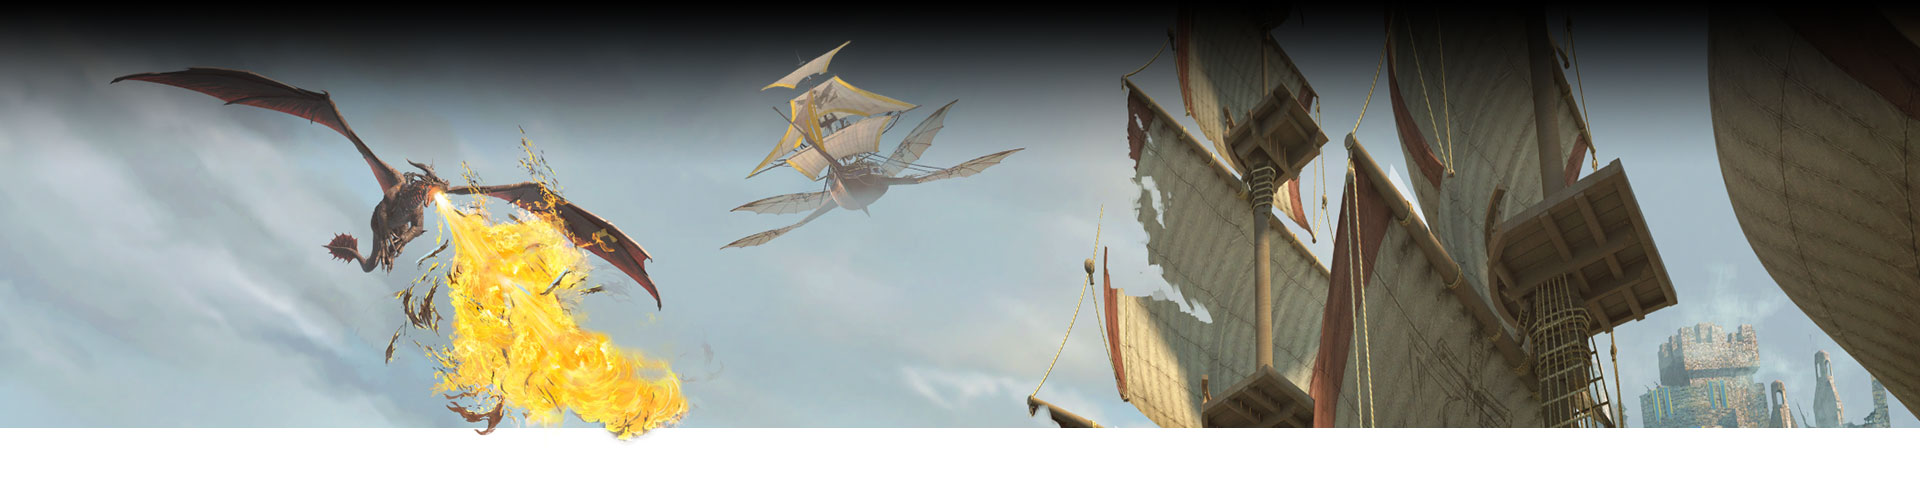 A flying pirate ship and flying dragon breathing fire